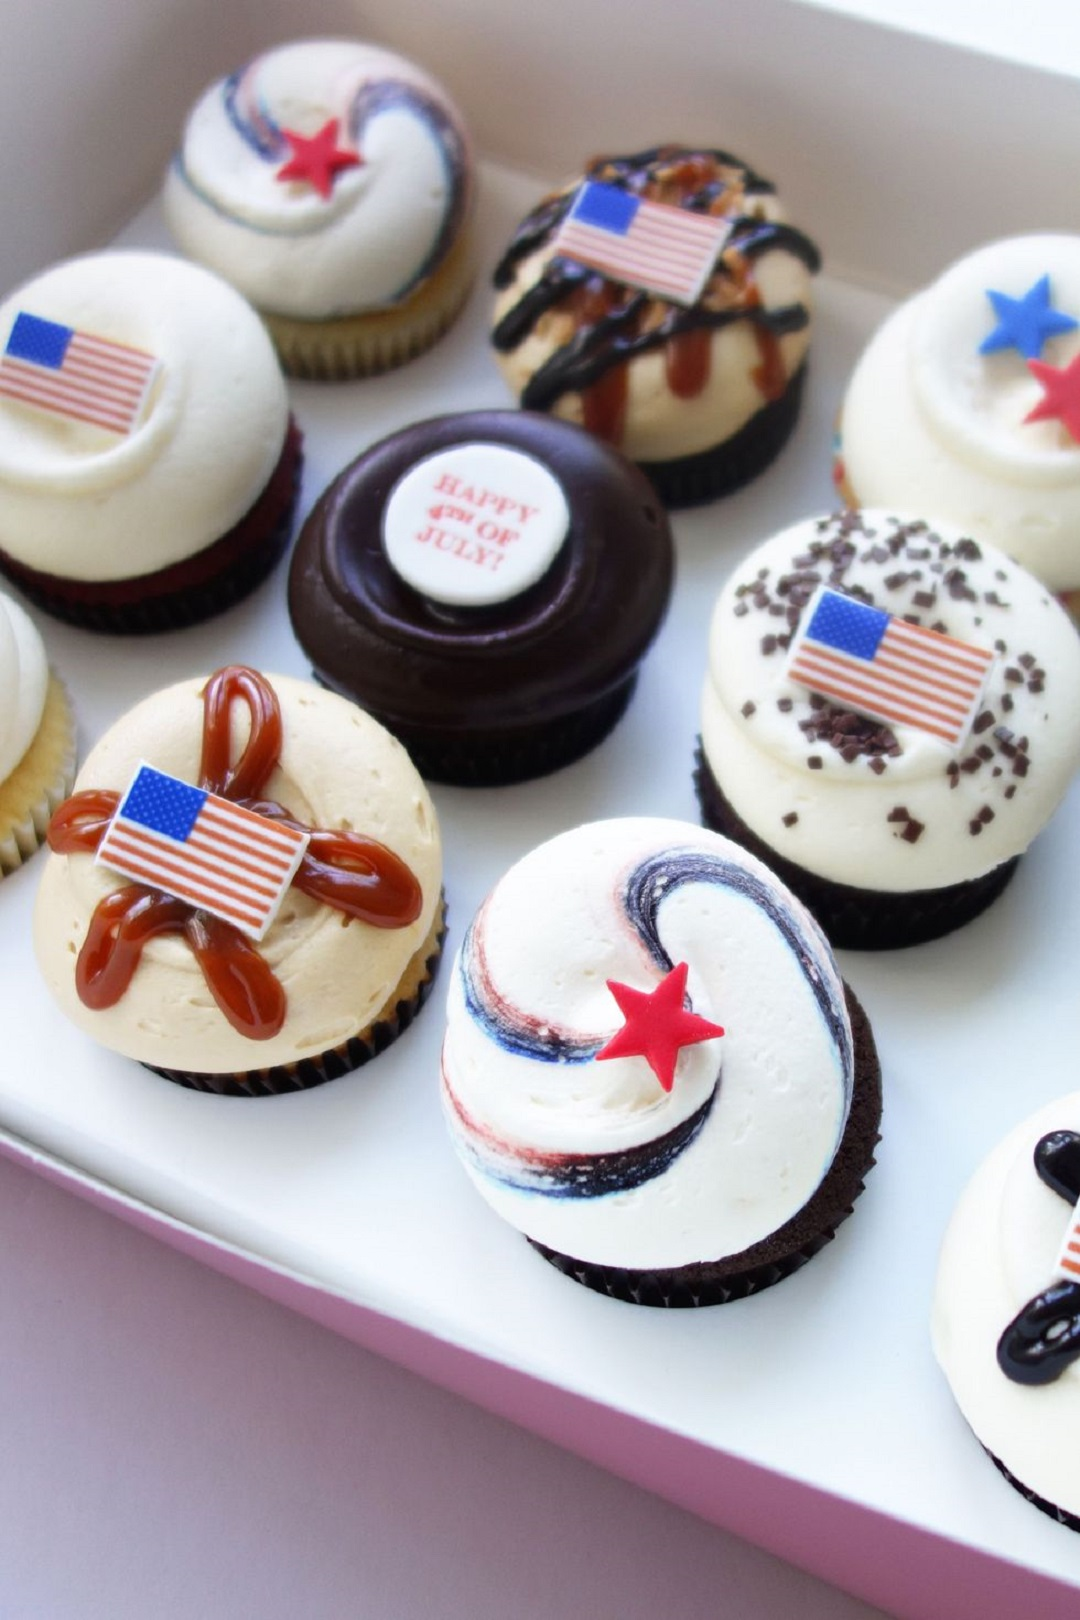 20 Things Every Preppy July 4th Party Needs from Town and Country